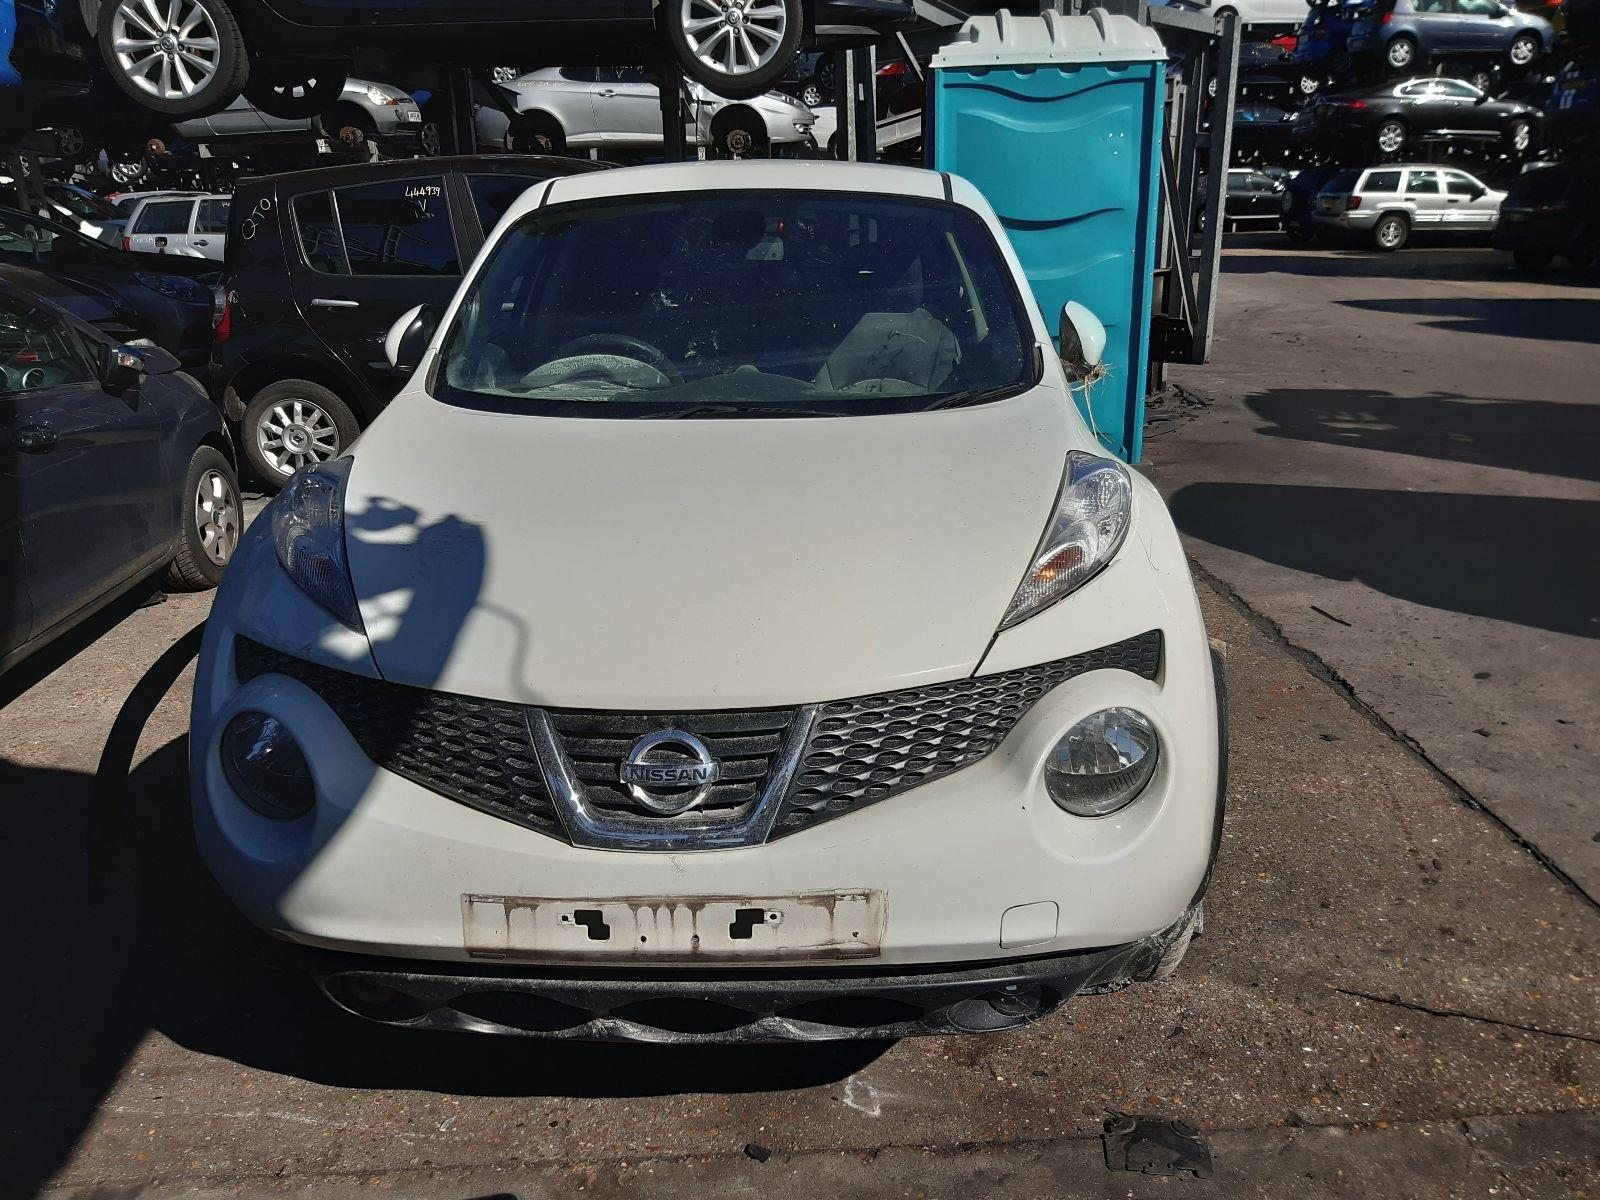 2013 Nissan Juke 2011 To 2014 Tekna 1.6l CVT Petrol WHITE ... on